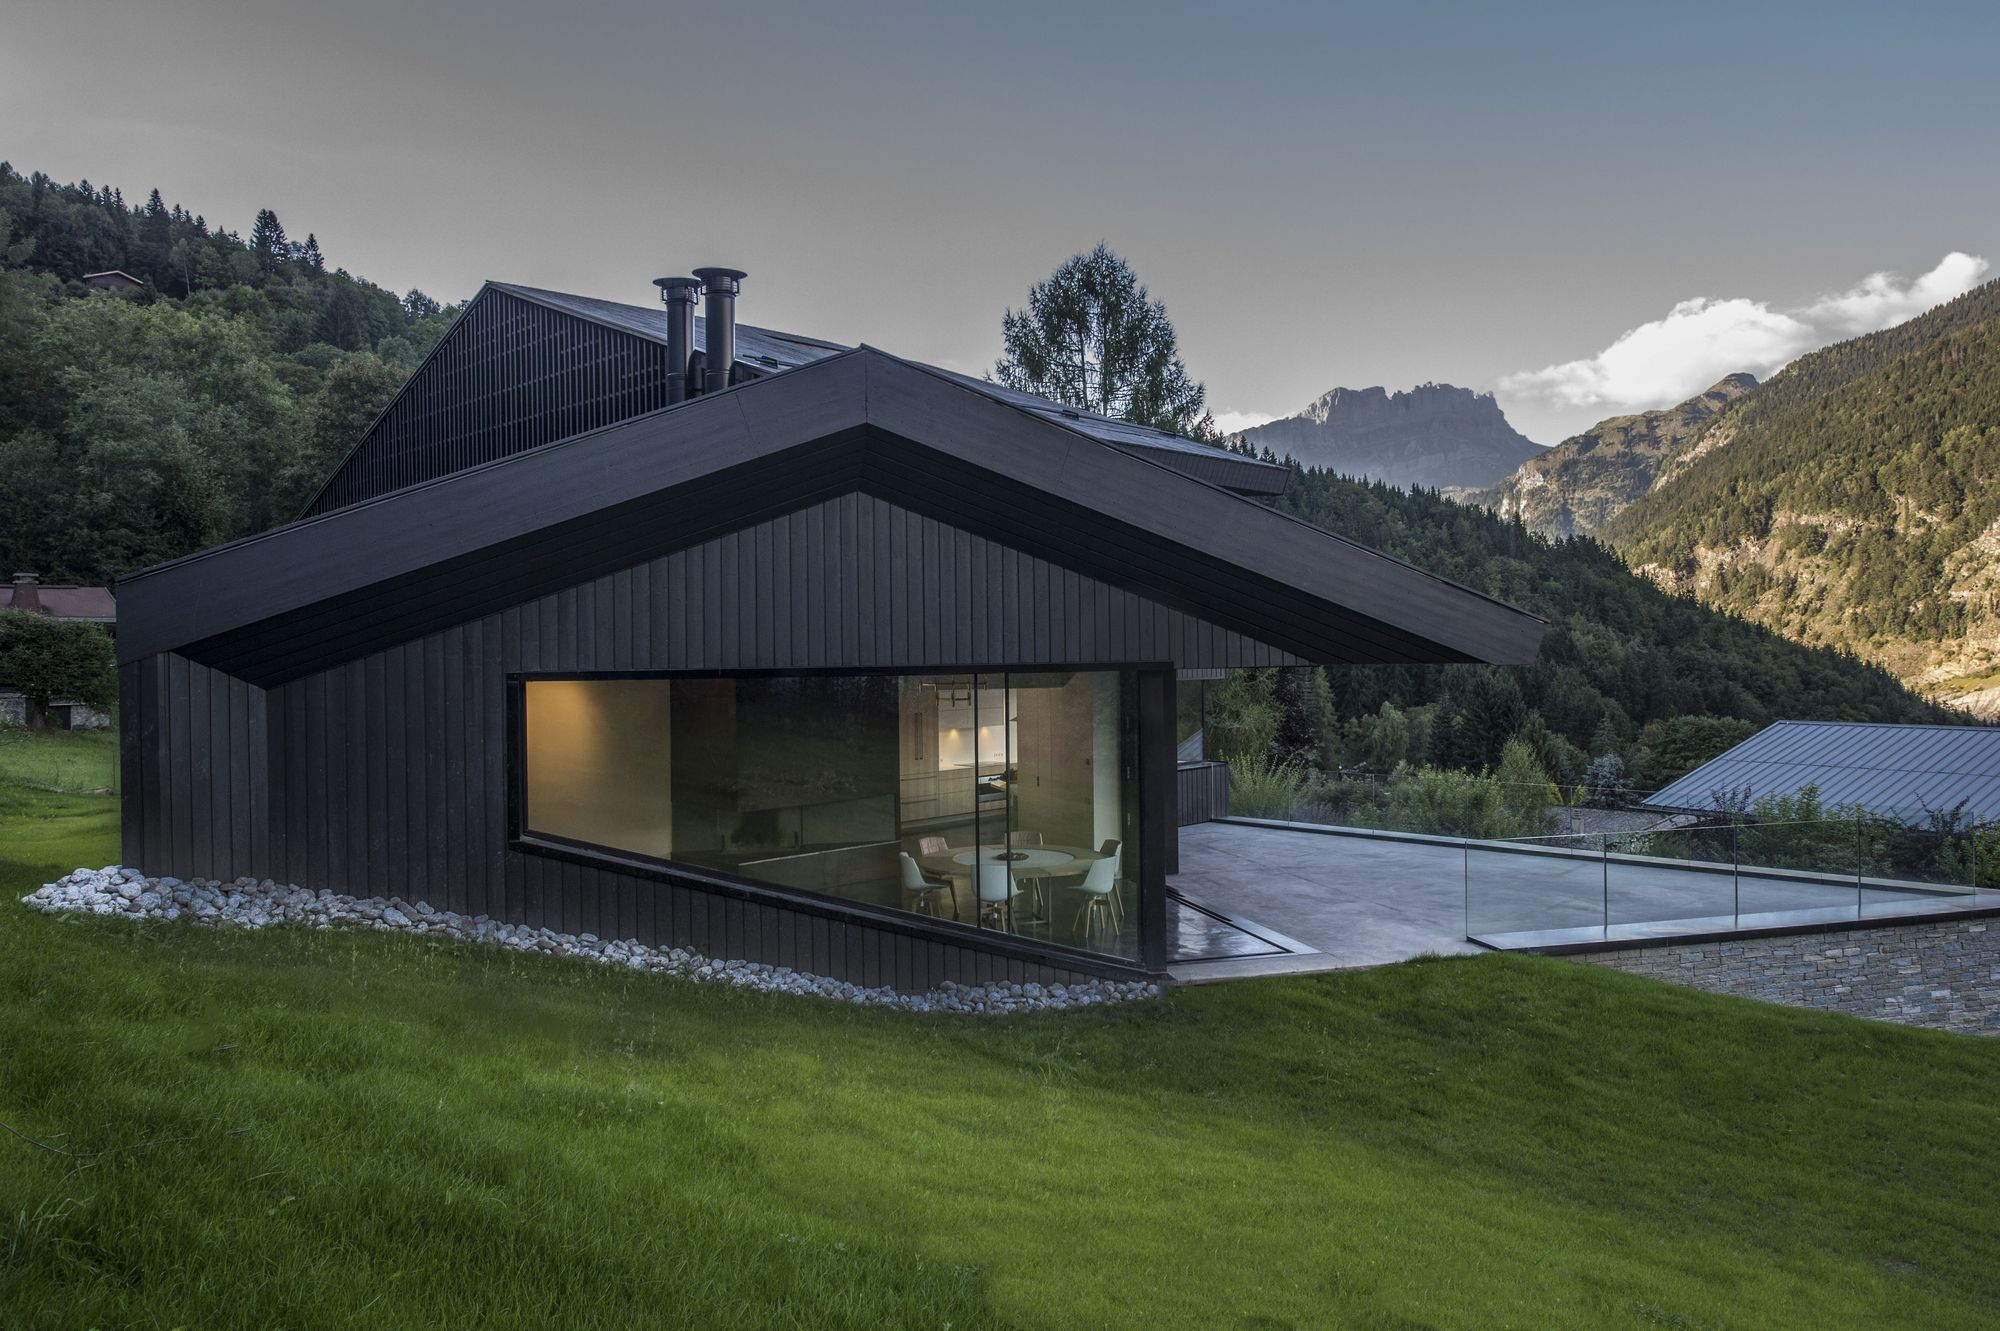 cabin in chamonix pierre marchand architects archdaily. Black Bedroom Furniture Sets. Home Design Ideas